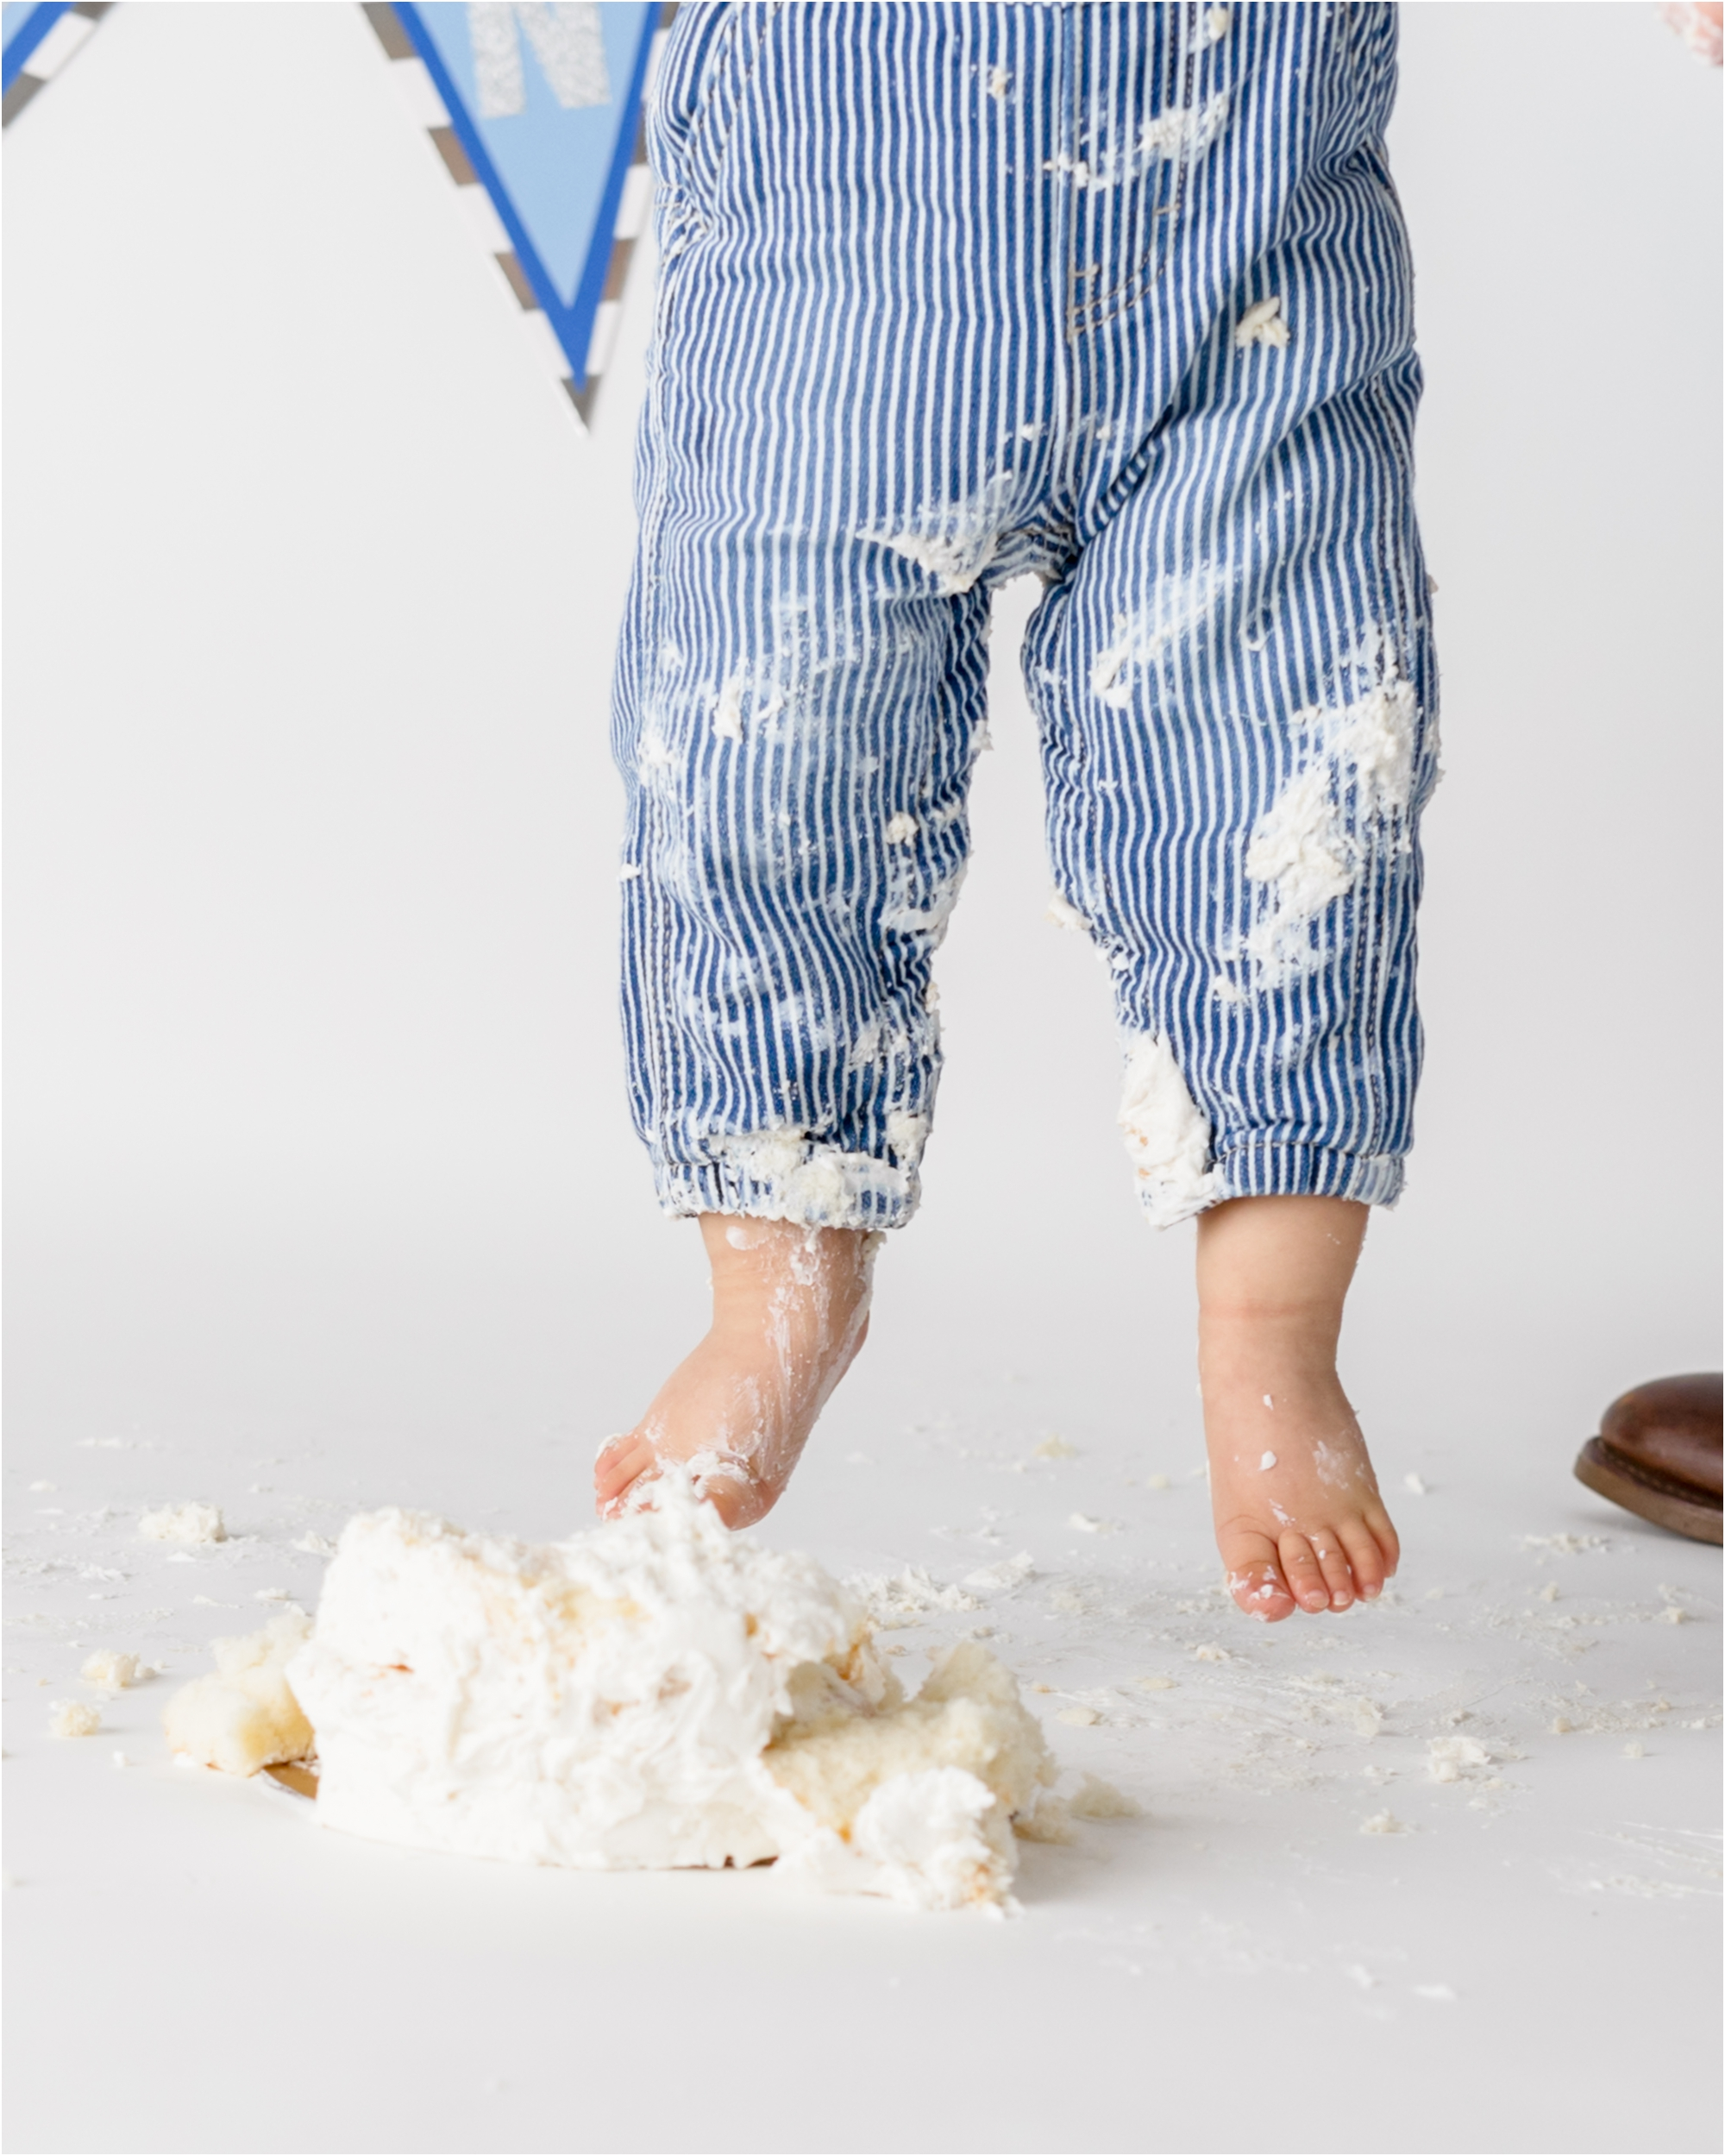 Closeup of baby's feet near cake after first birthday cake smash session in Houston studio. Photo by Lifetime of Clicks Photography.